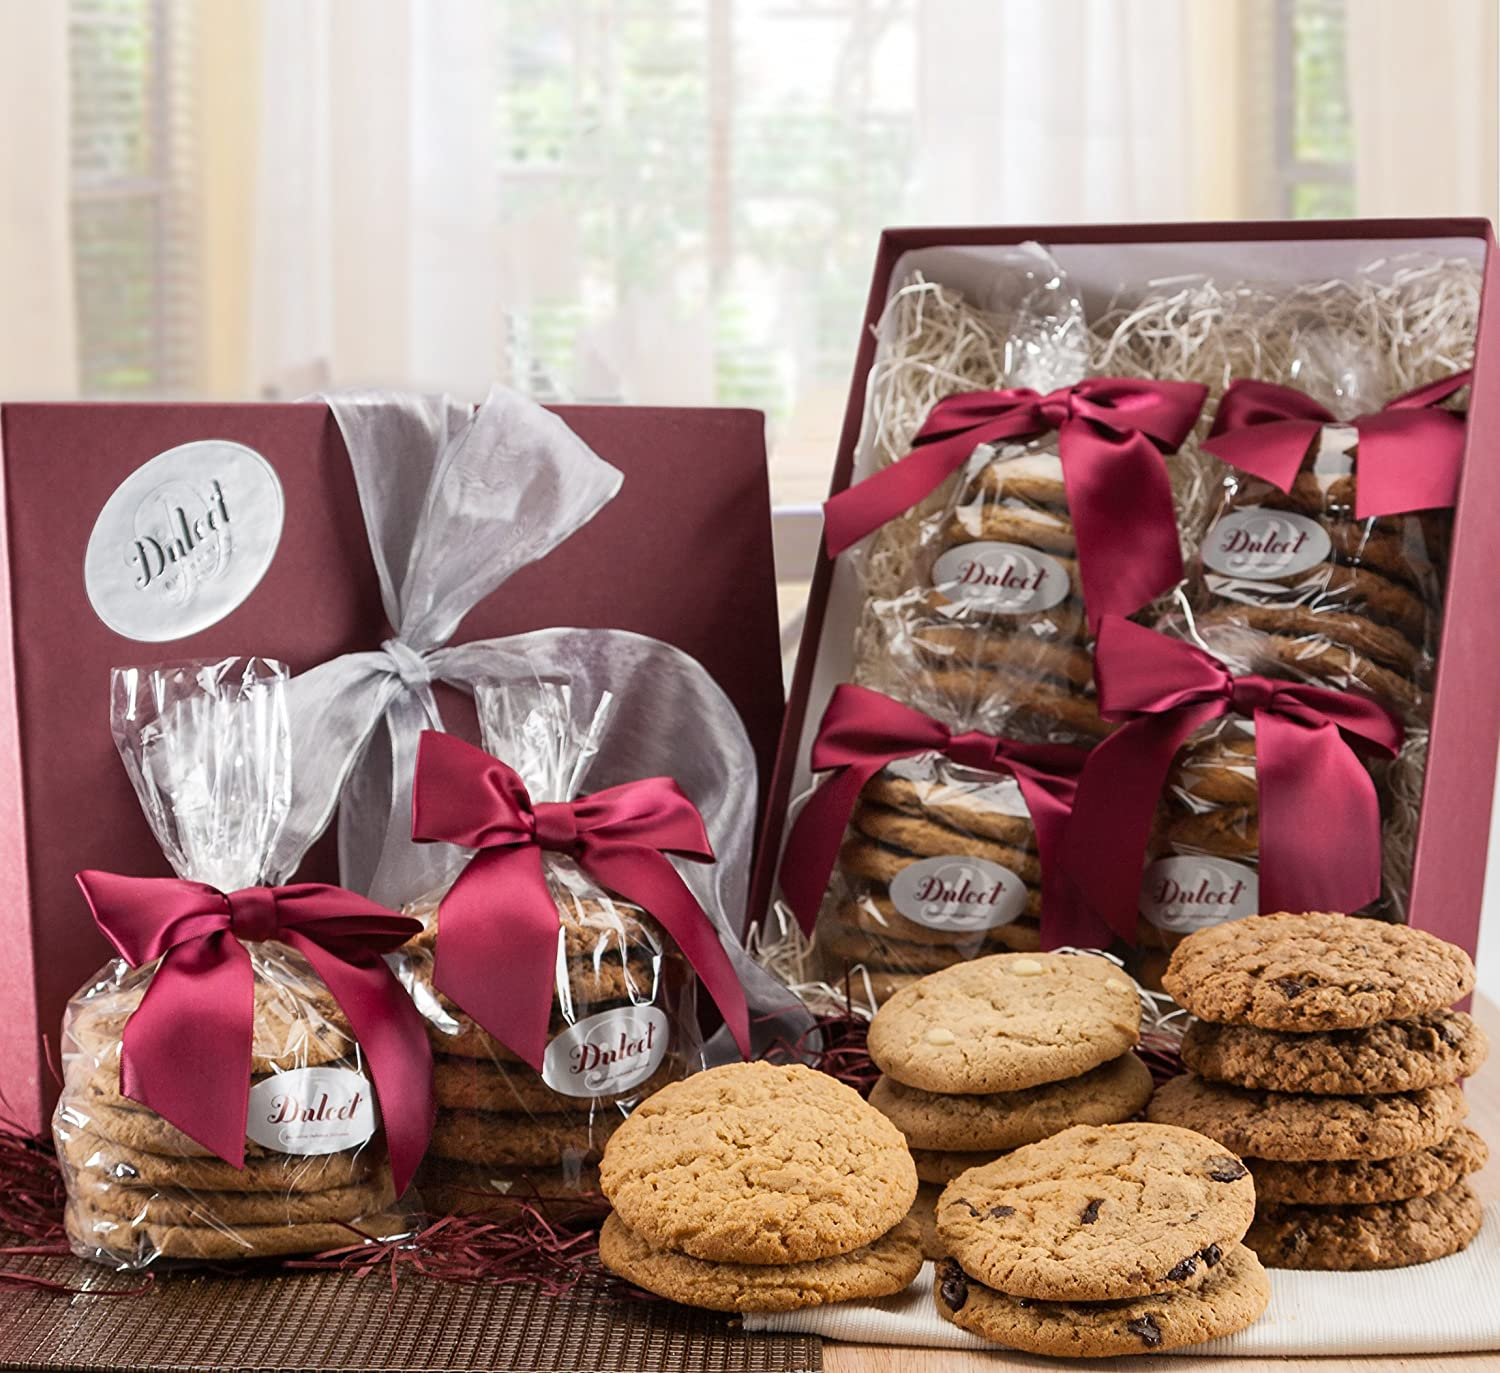 amazoncom cookie gift baskets for men and women or any occasion gourmet baked goods gifts grocery gourmet food - Christmas Cookie Gift Ideas